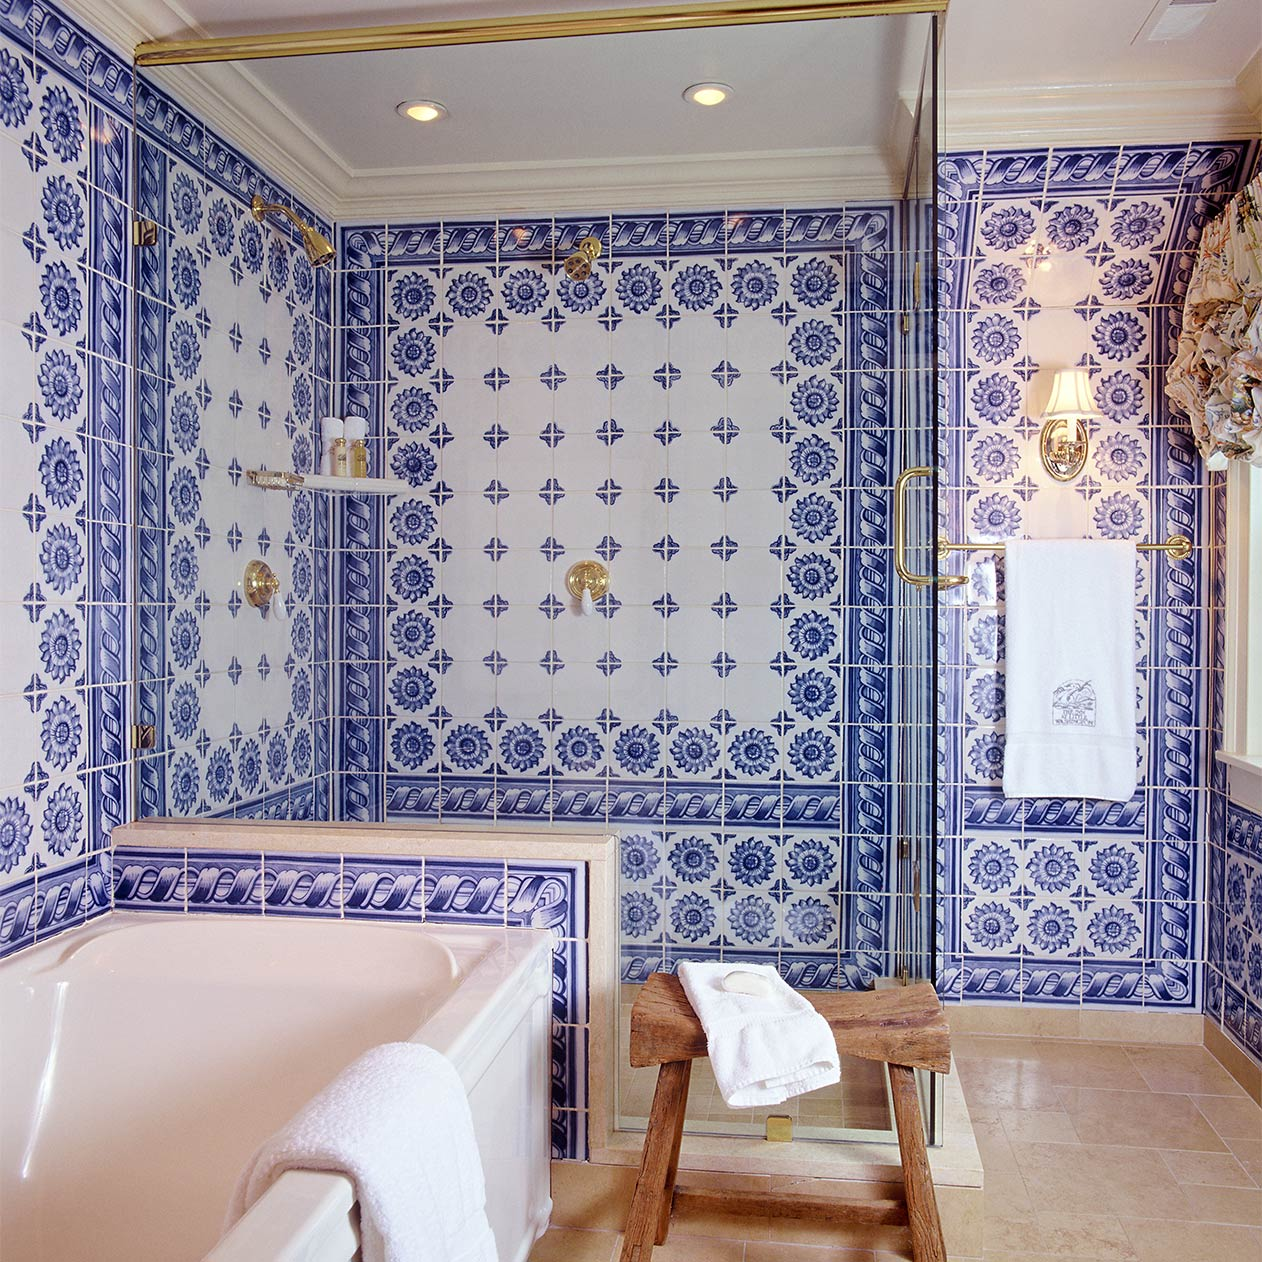 A large bathroom featuring a prominent soaking tub and separate walk in shower. The walls are made up of patterned, hand painted blue and white tiles.